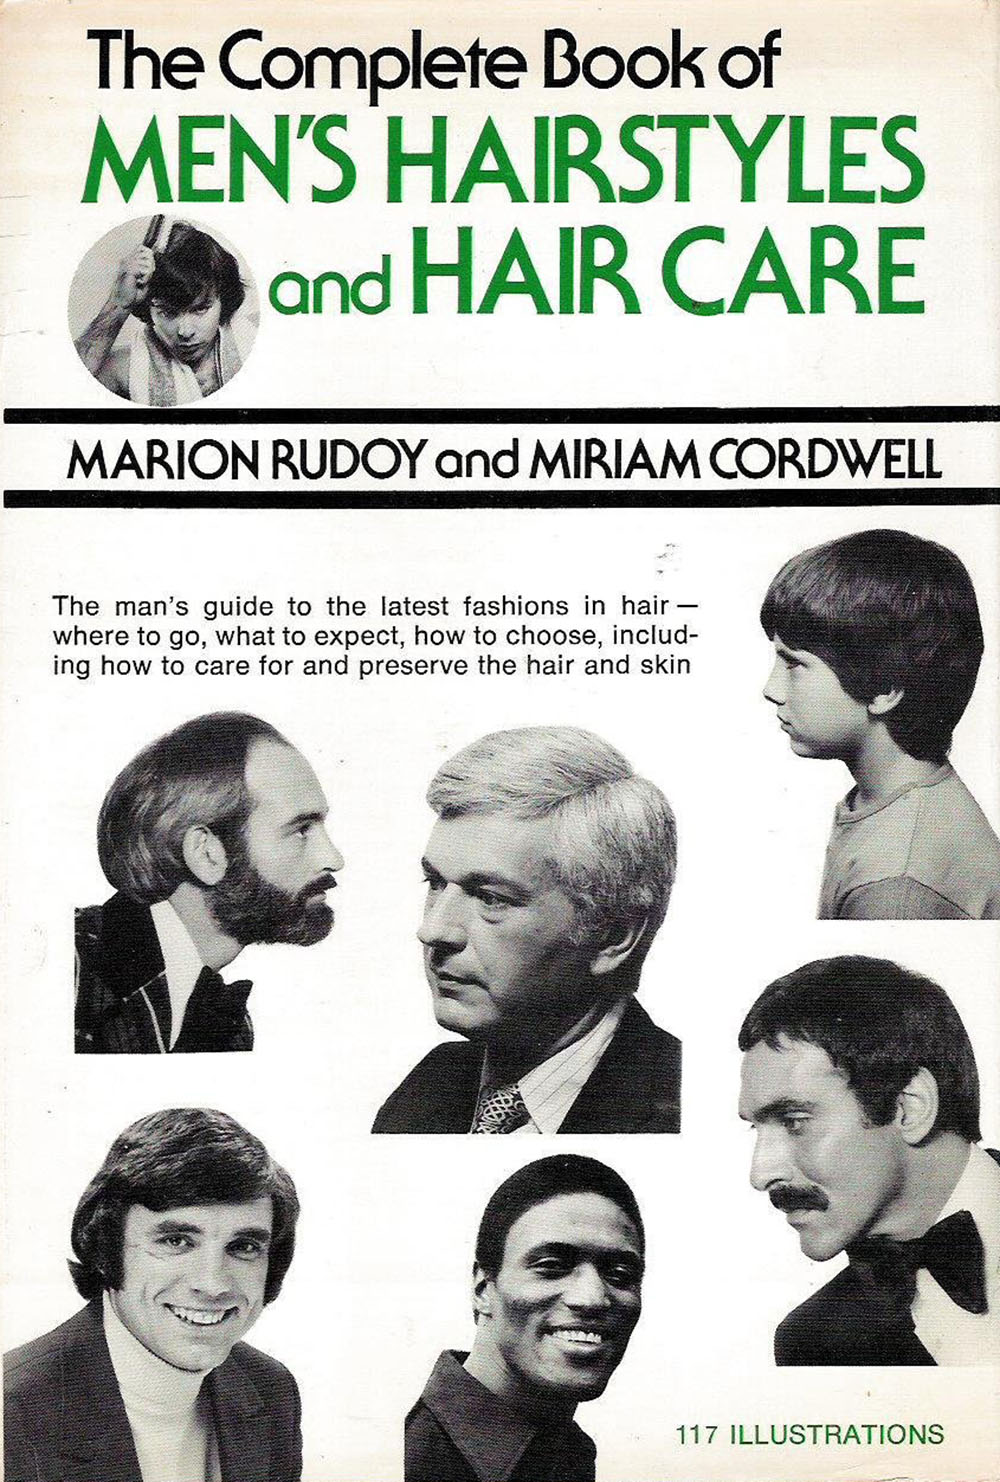 Choose Your Retro Haircut! Hair Style Selections from the ...